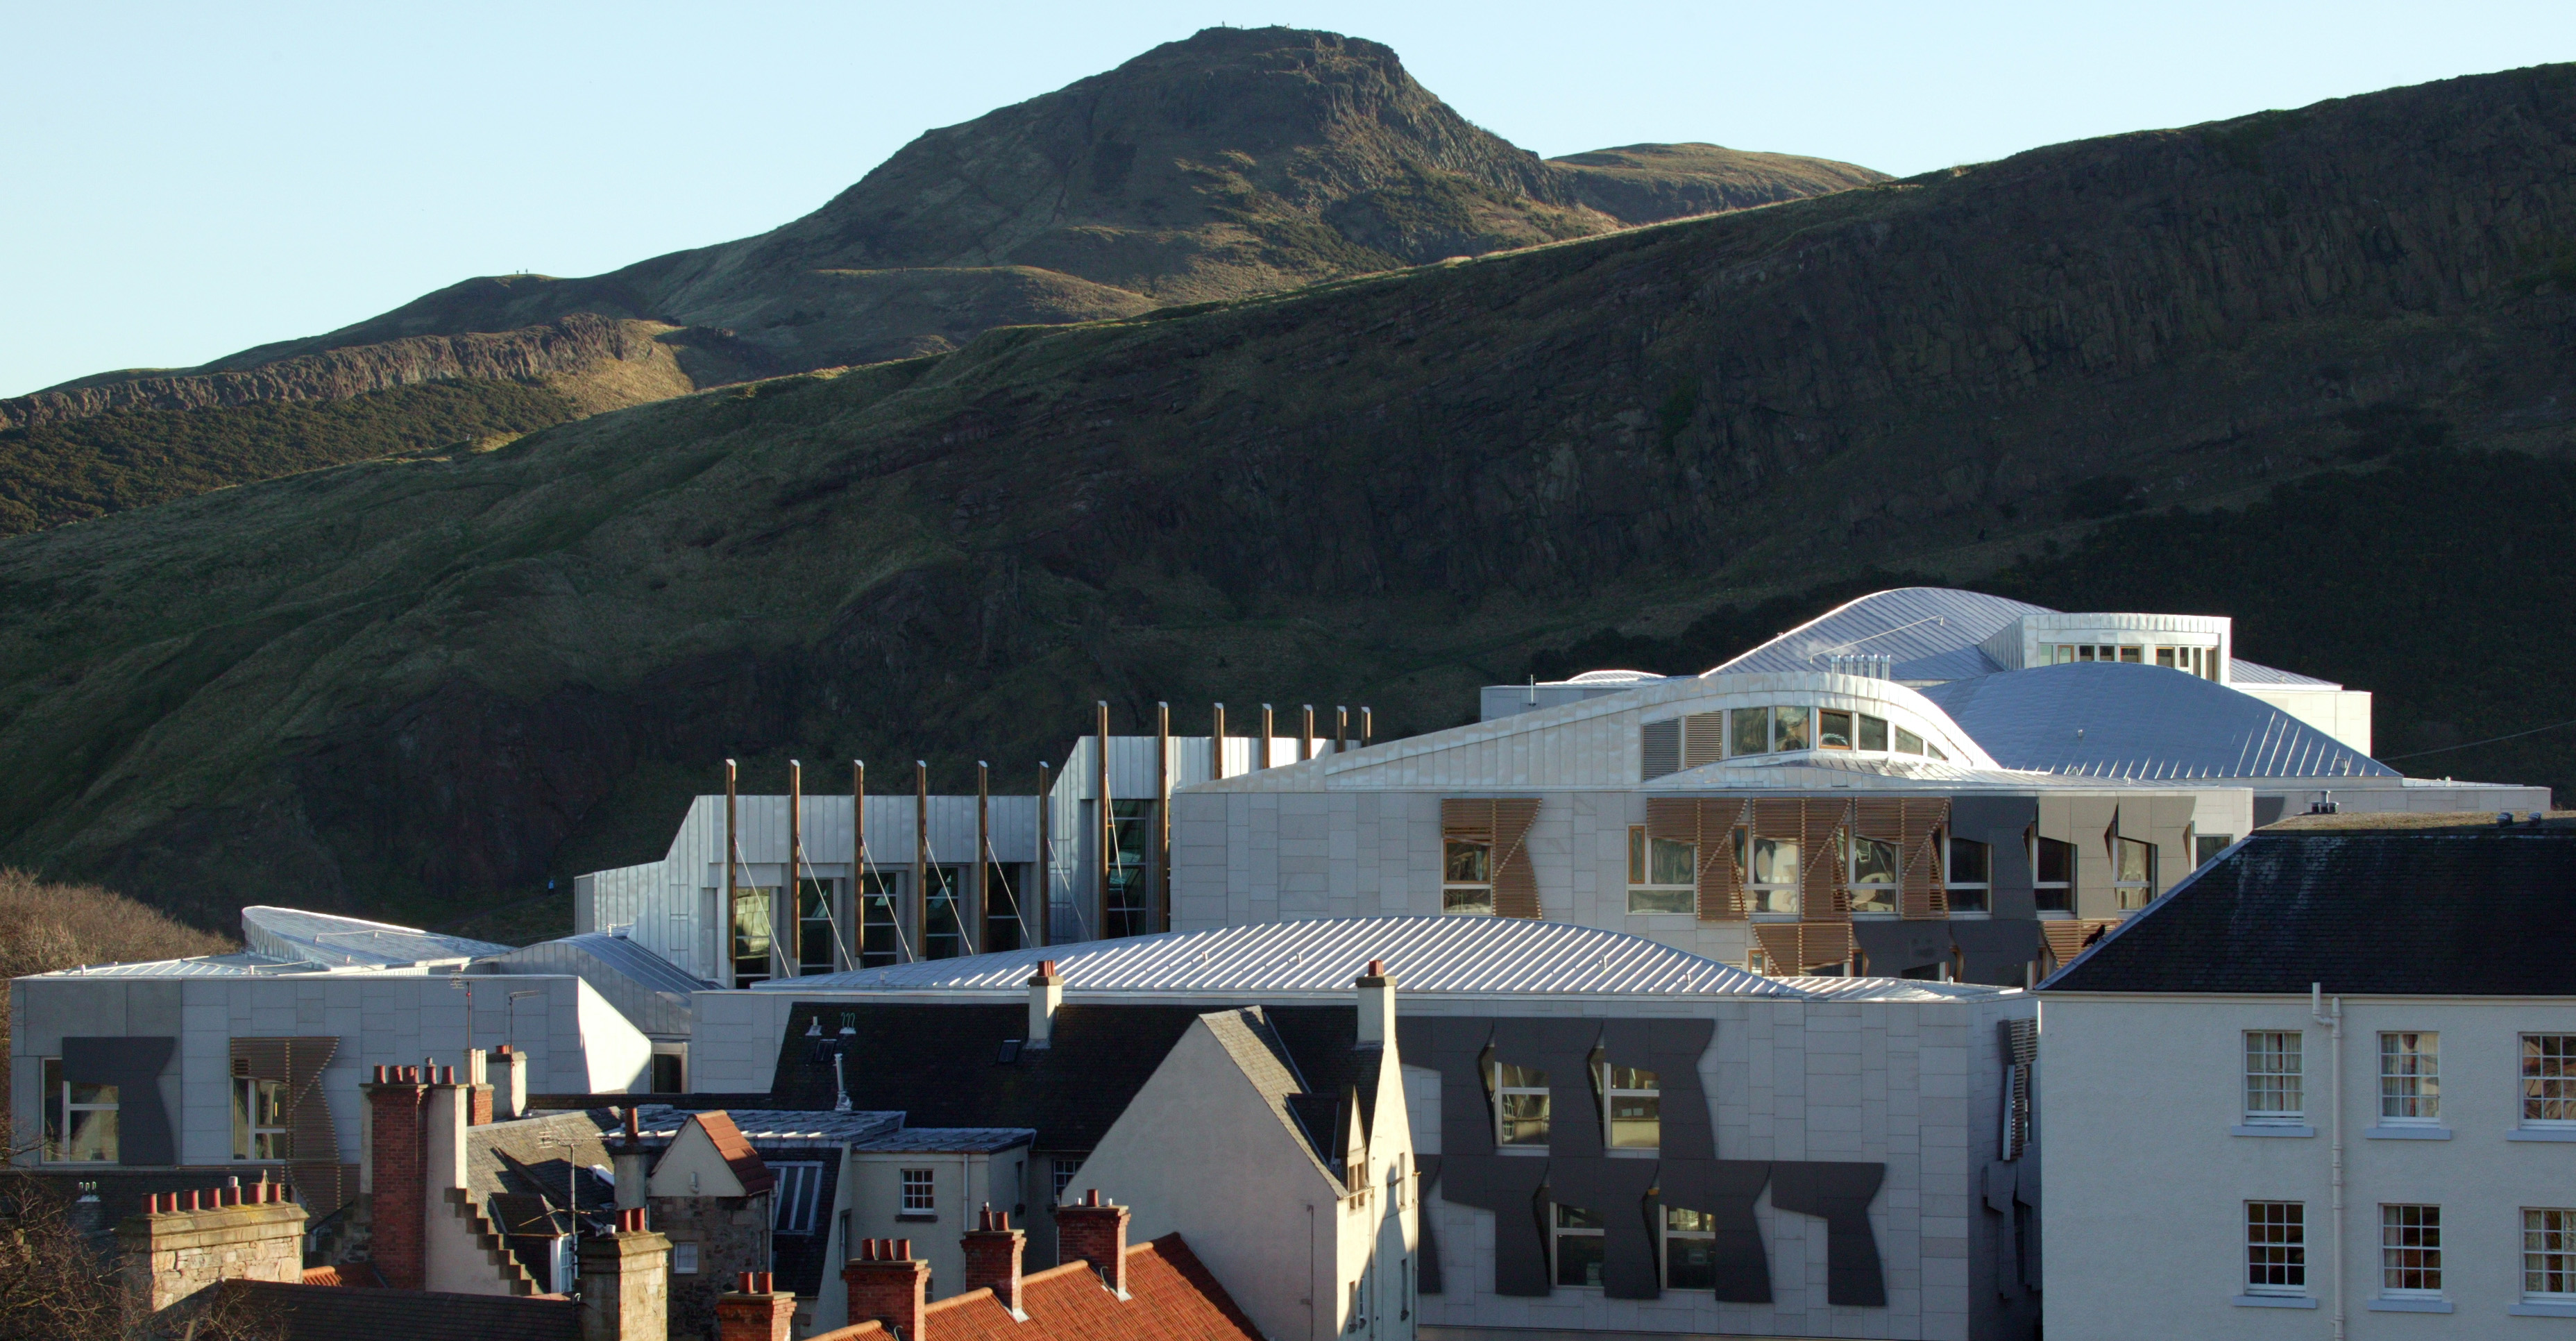 1ST FEBRUARY 2005. LOOKING OVER COMMITTEE TOWER ROOFS TOWARDS ARTHUR'S SEAT AT THE SCOTTISH PARLIAMENT COMPLEX, EDINBURGH. PIC-ANDREW COWAN/SCOTTISH PARLIAMENT. PHOTOGRAPH(C)2005 SCOTTISH PARLIAMENTARY CORPORATE BODY.